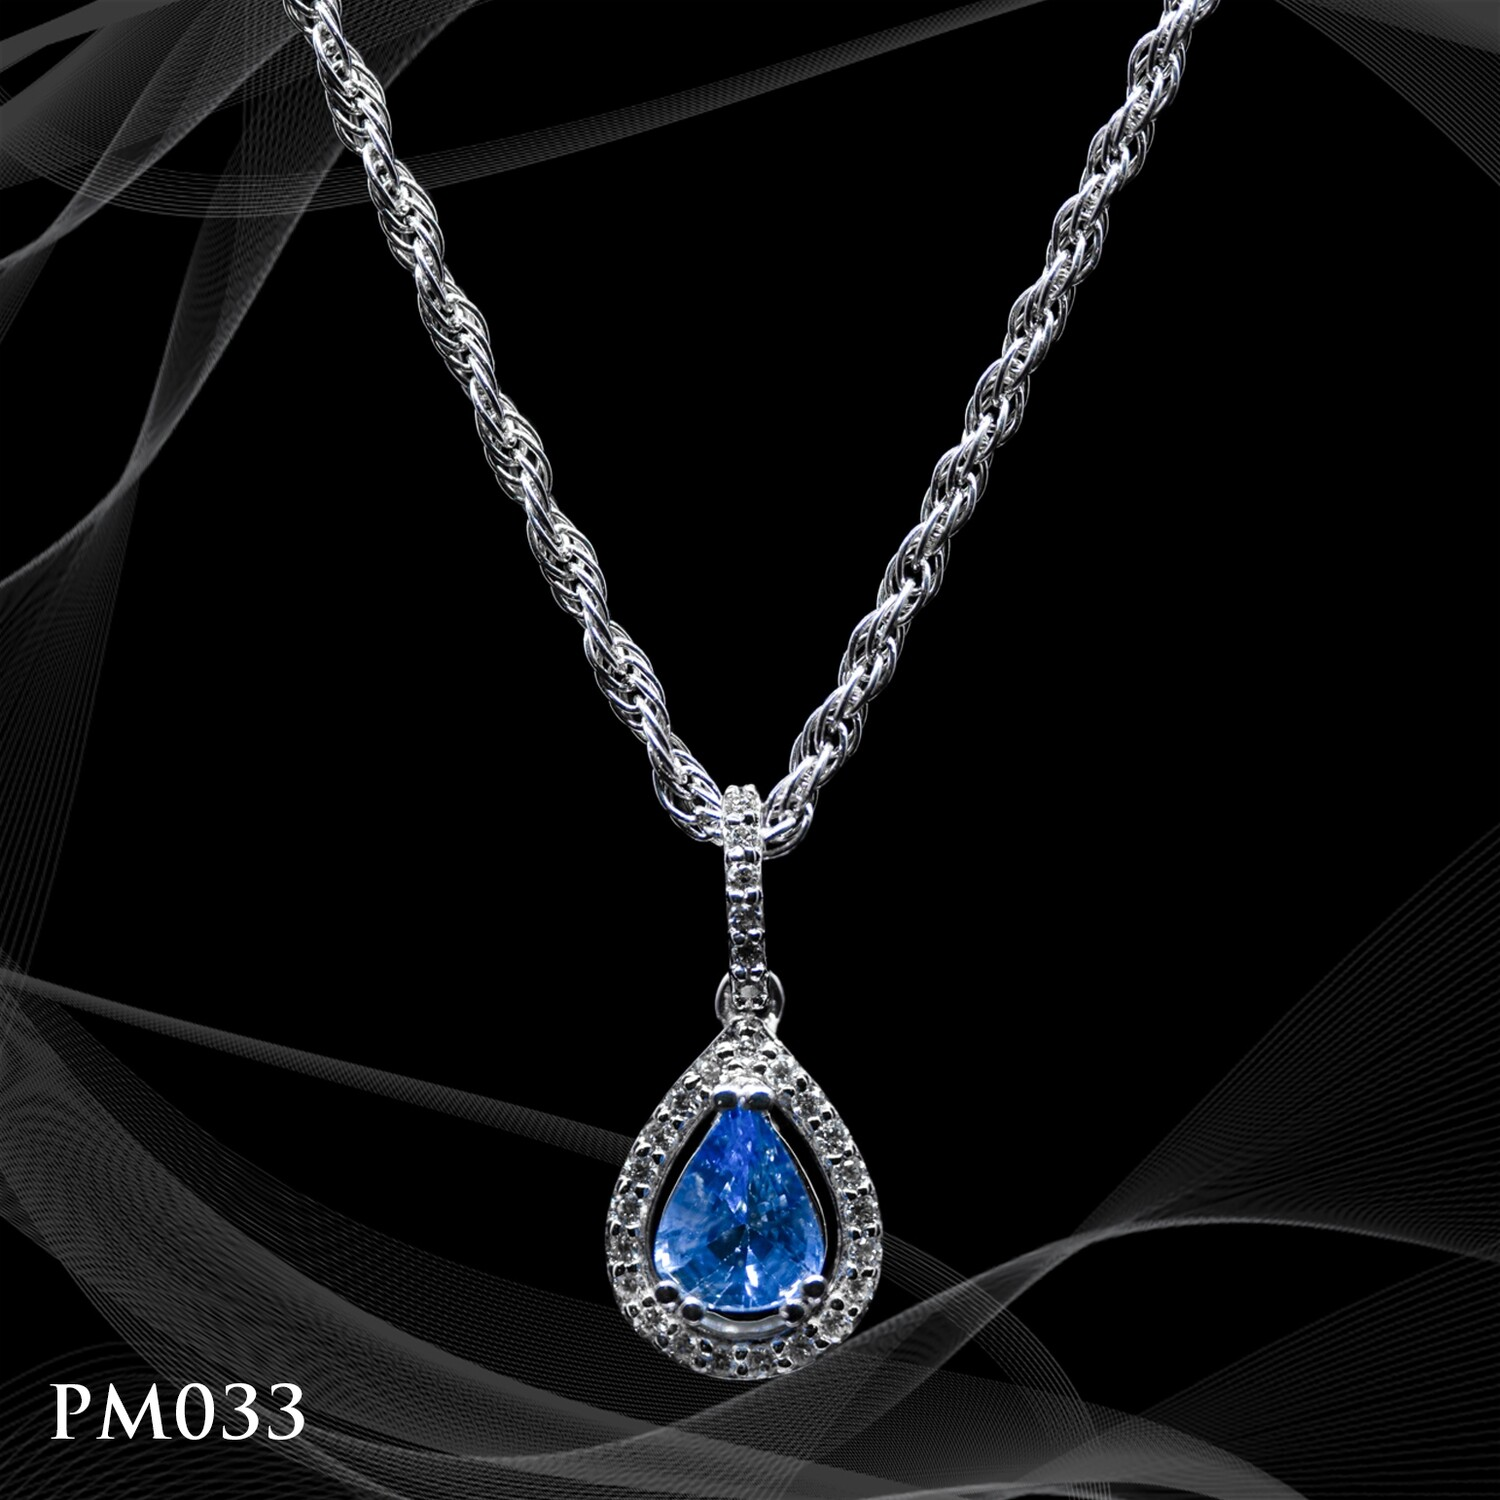 14 Karat Whir Gold Tear Drop Sapphire and Diamond Pendant